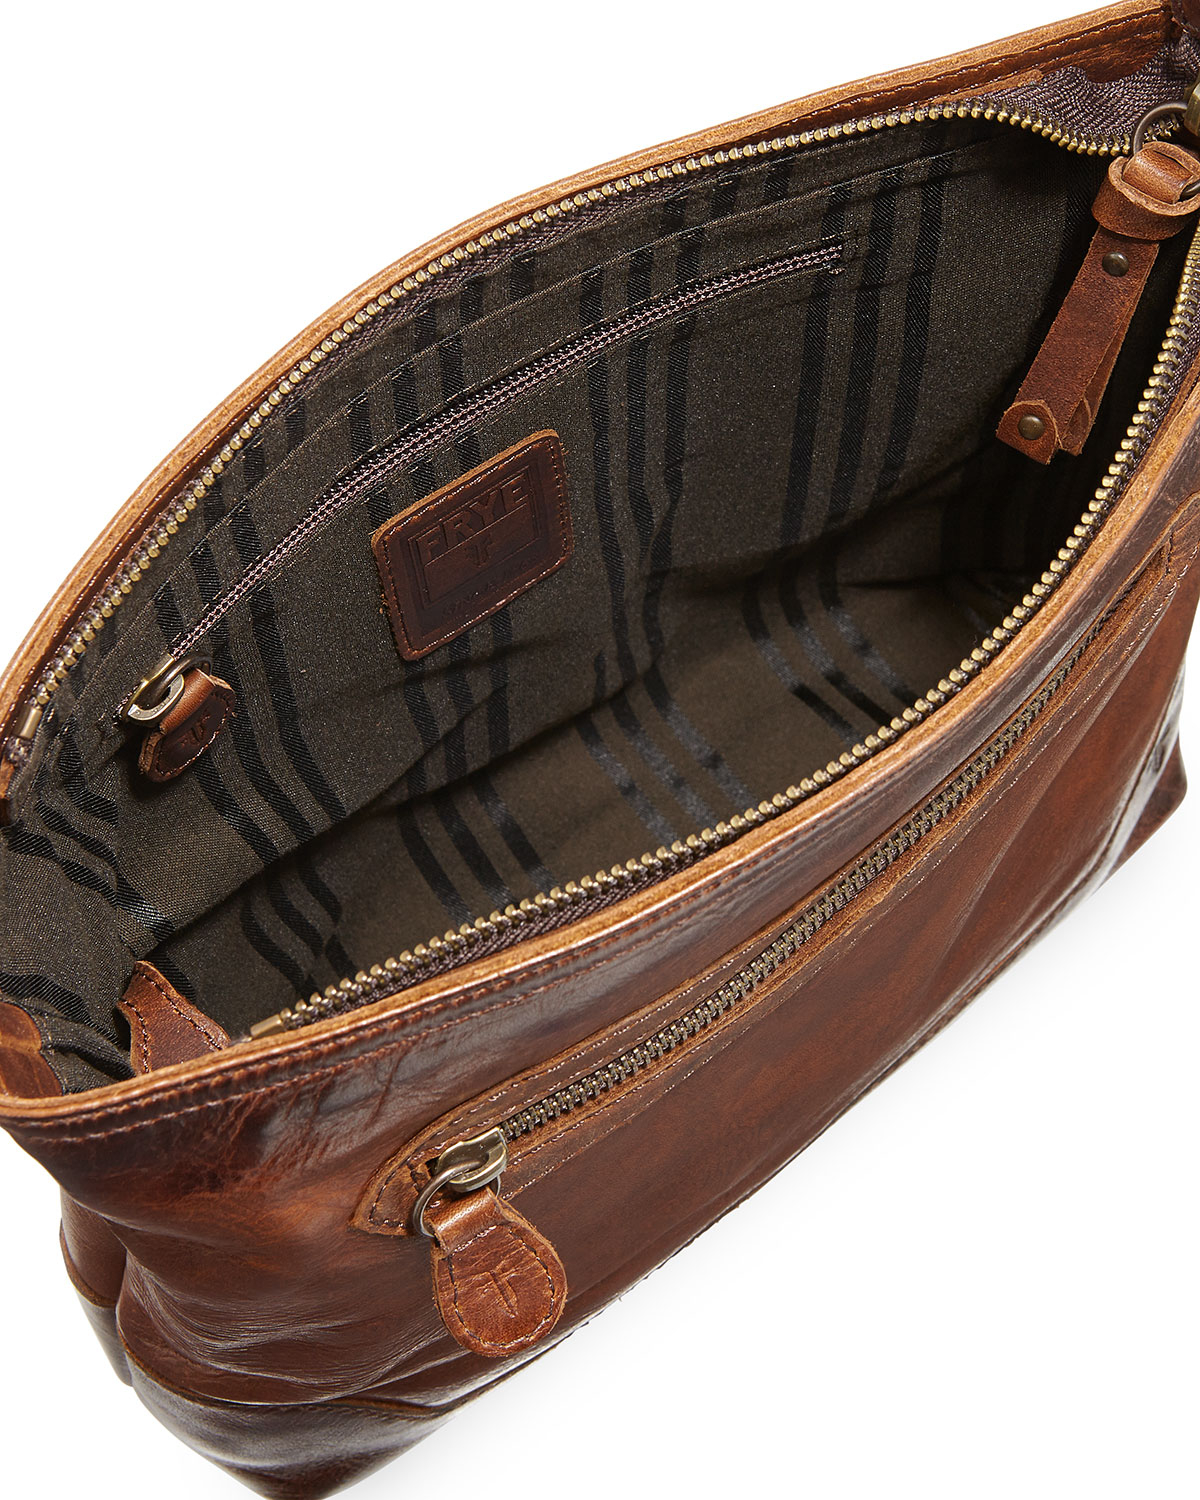 de835dc61c591e Frye Melissa Tumbled Leather Crossbody Bag in Brown - Lyst